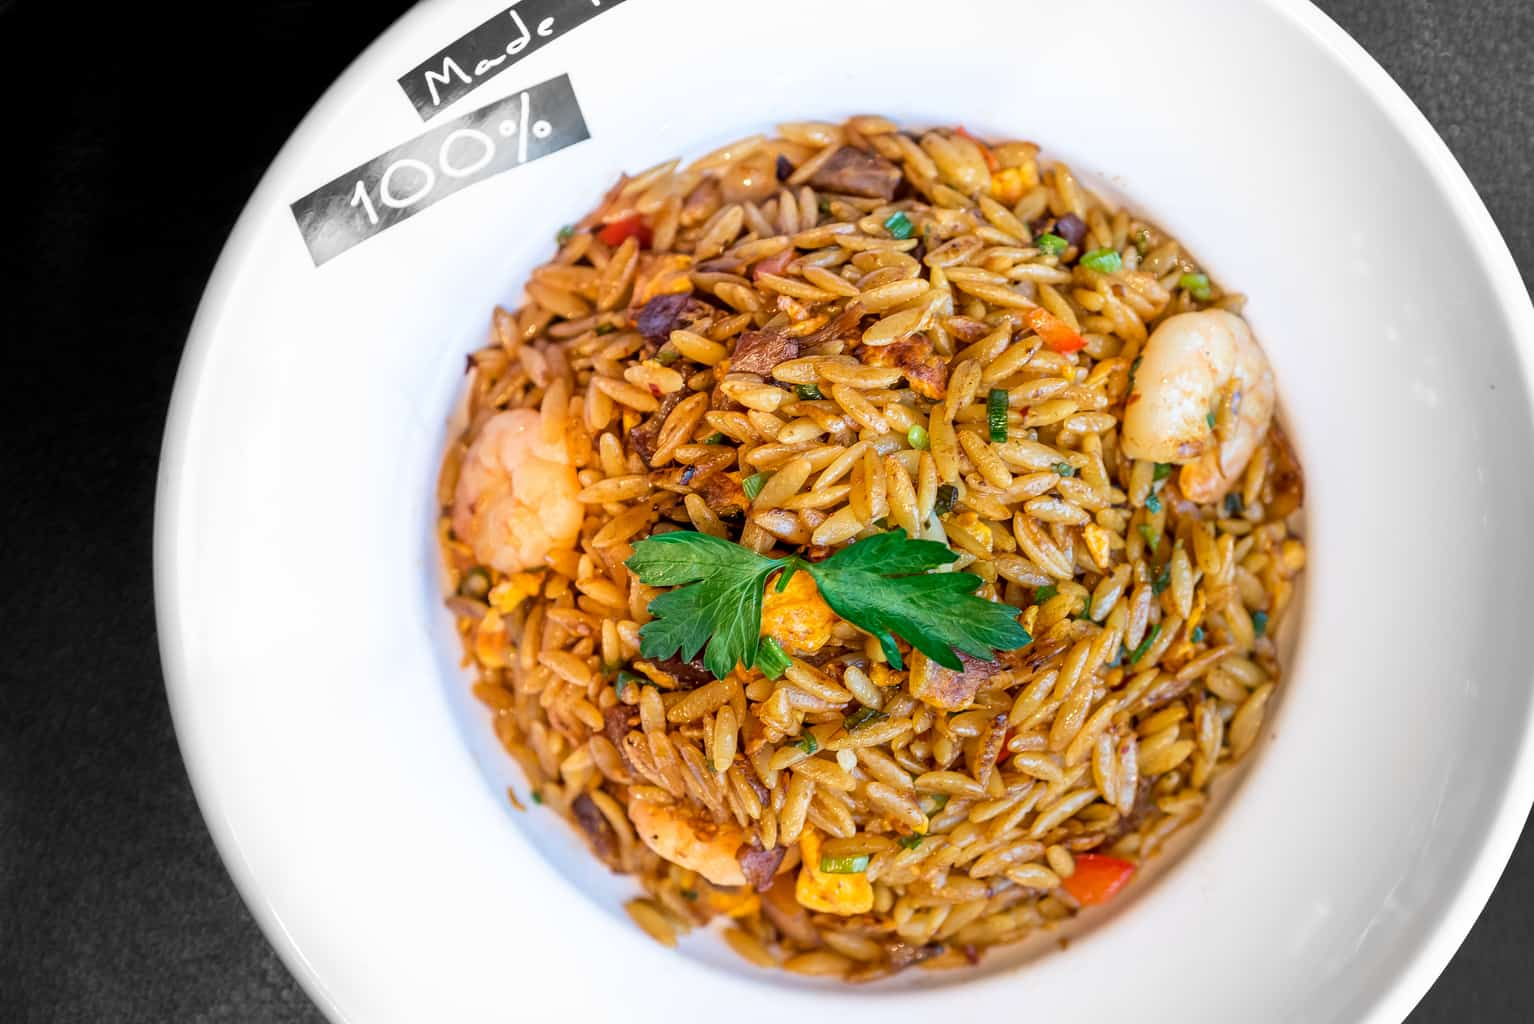 XO sauce stir fried Orzo